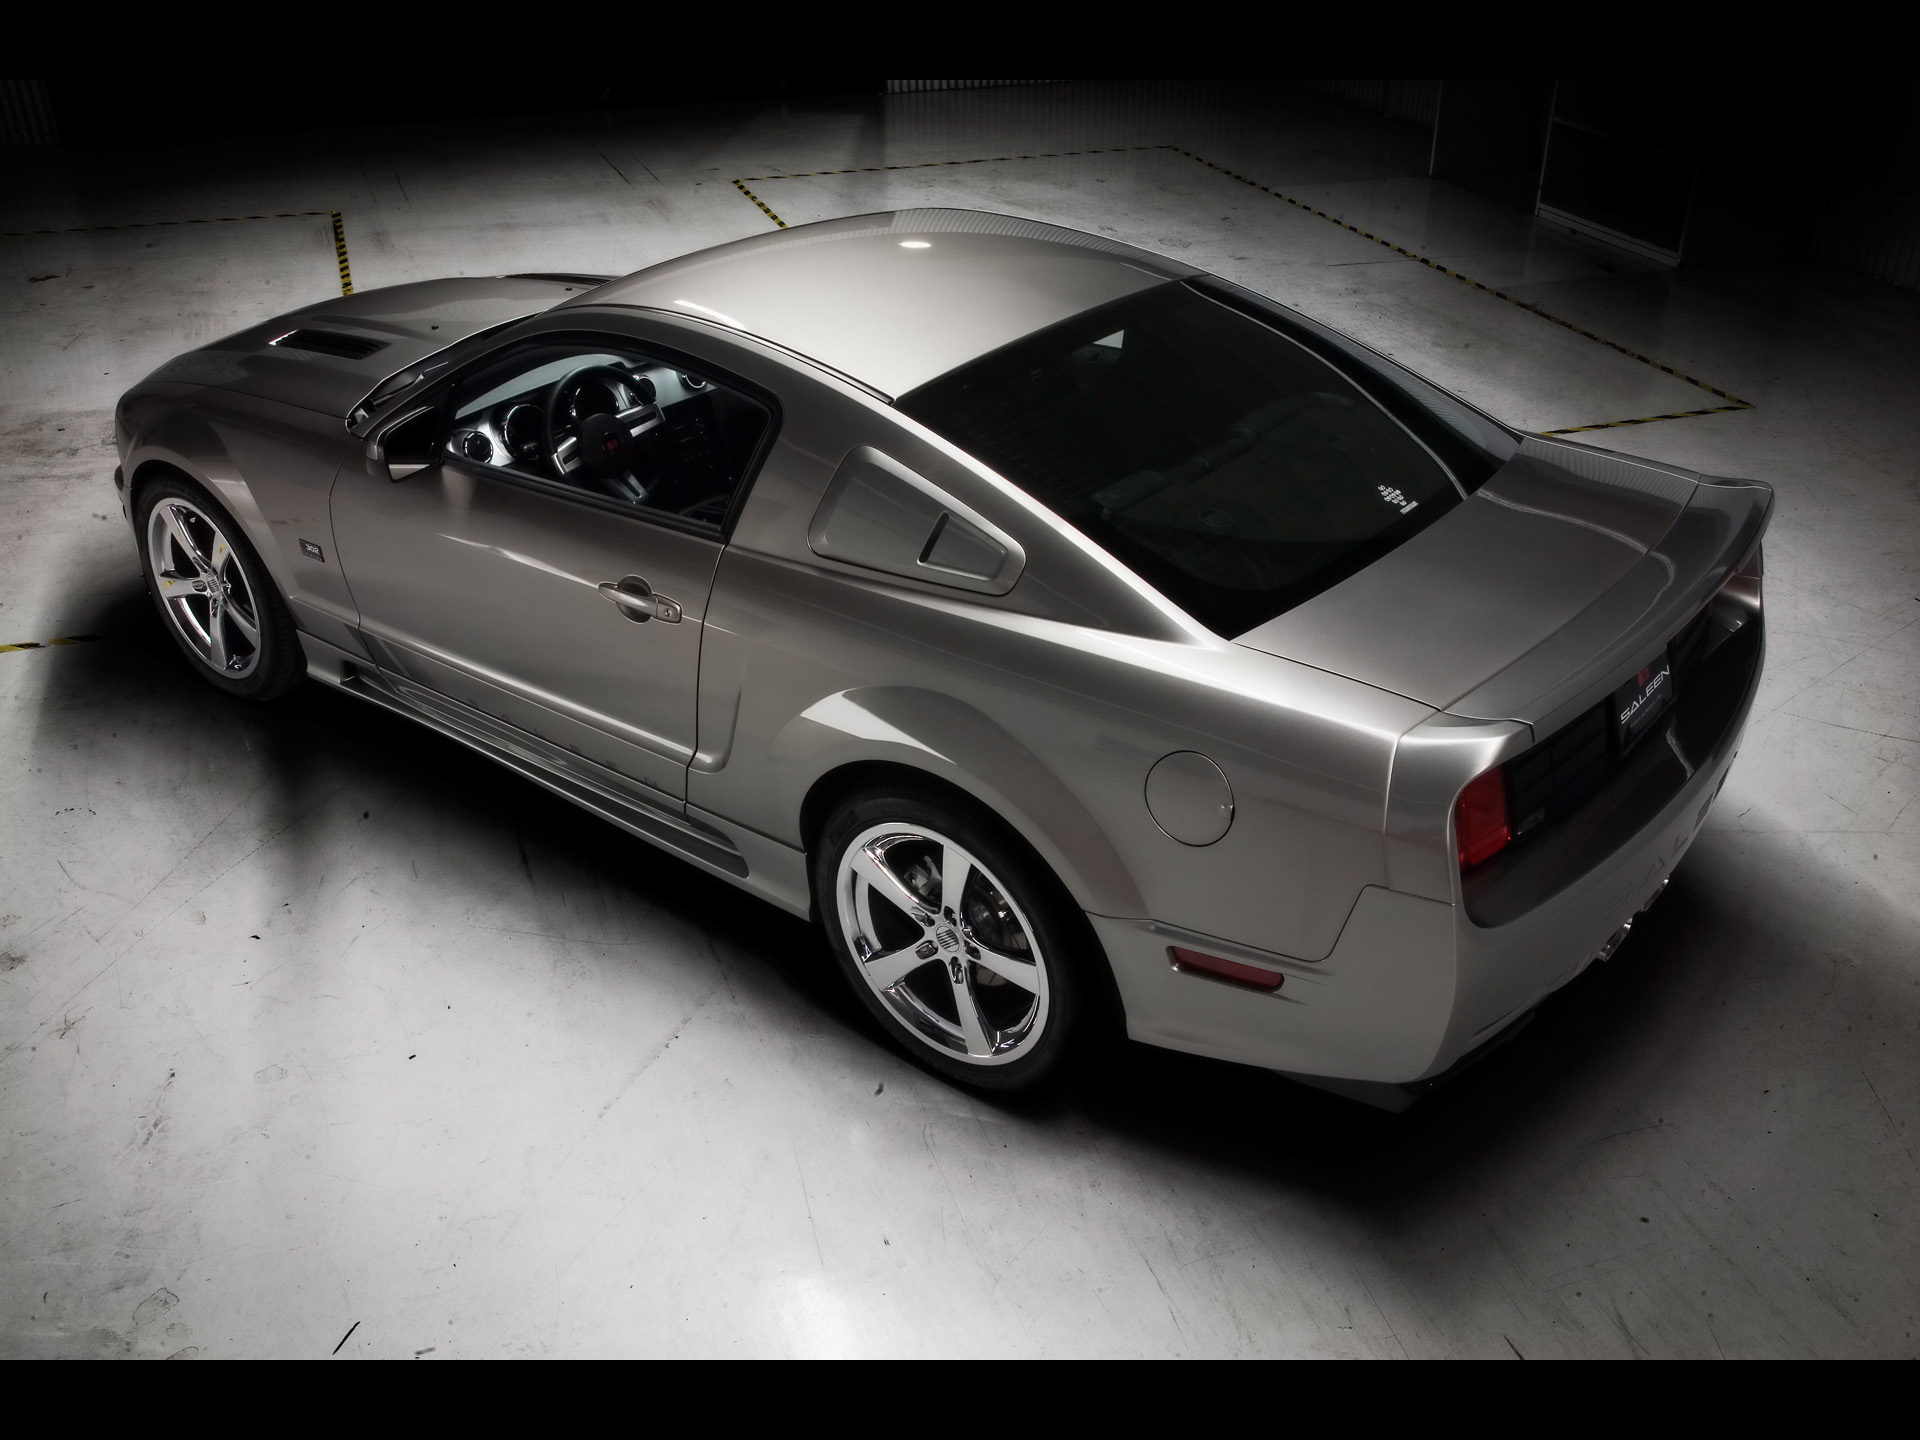 Saleen Mustang S302 Extreme photo 49639